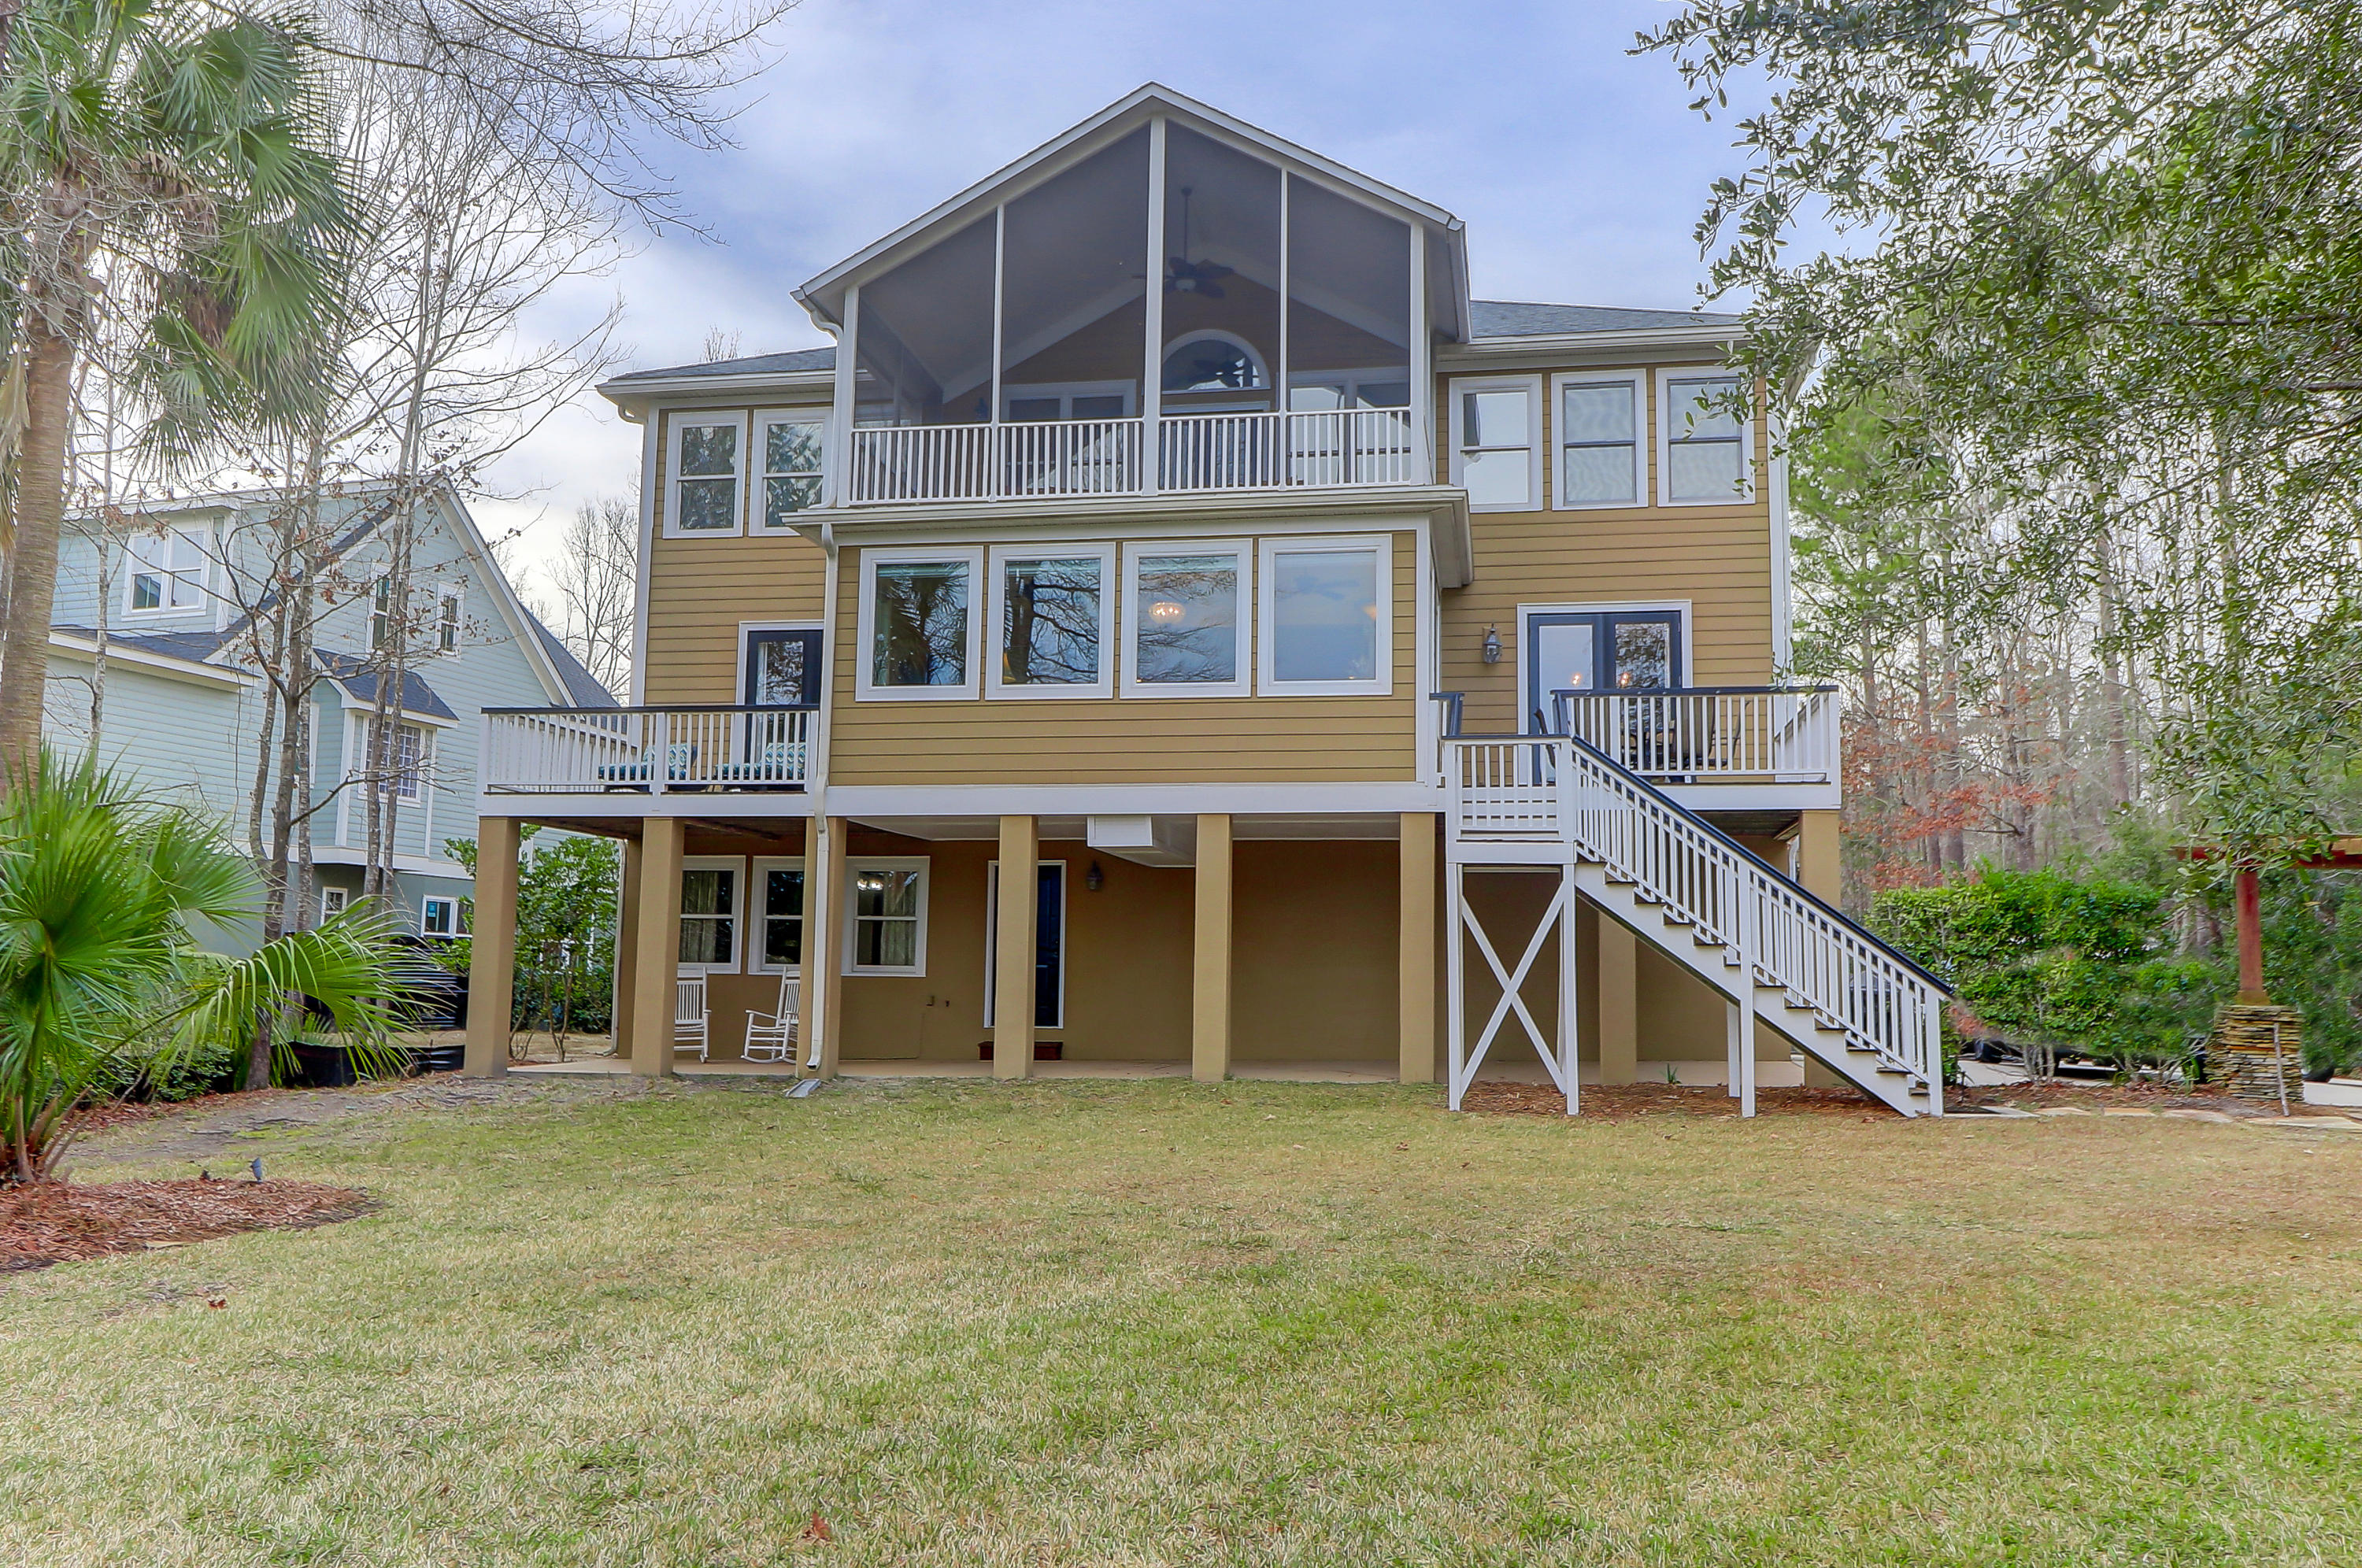 Dunes West Homes For Sale - 1764 Greenspoint, Mount Pleasant, SC - 63